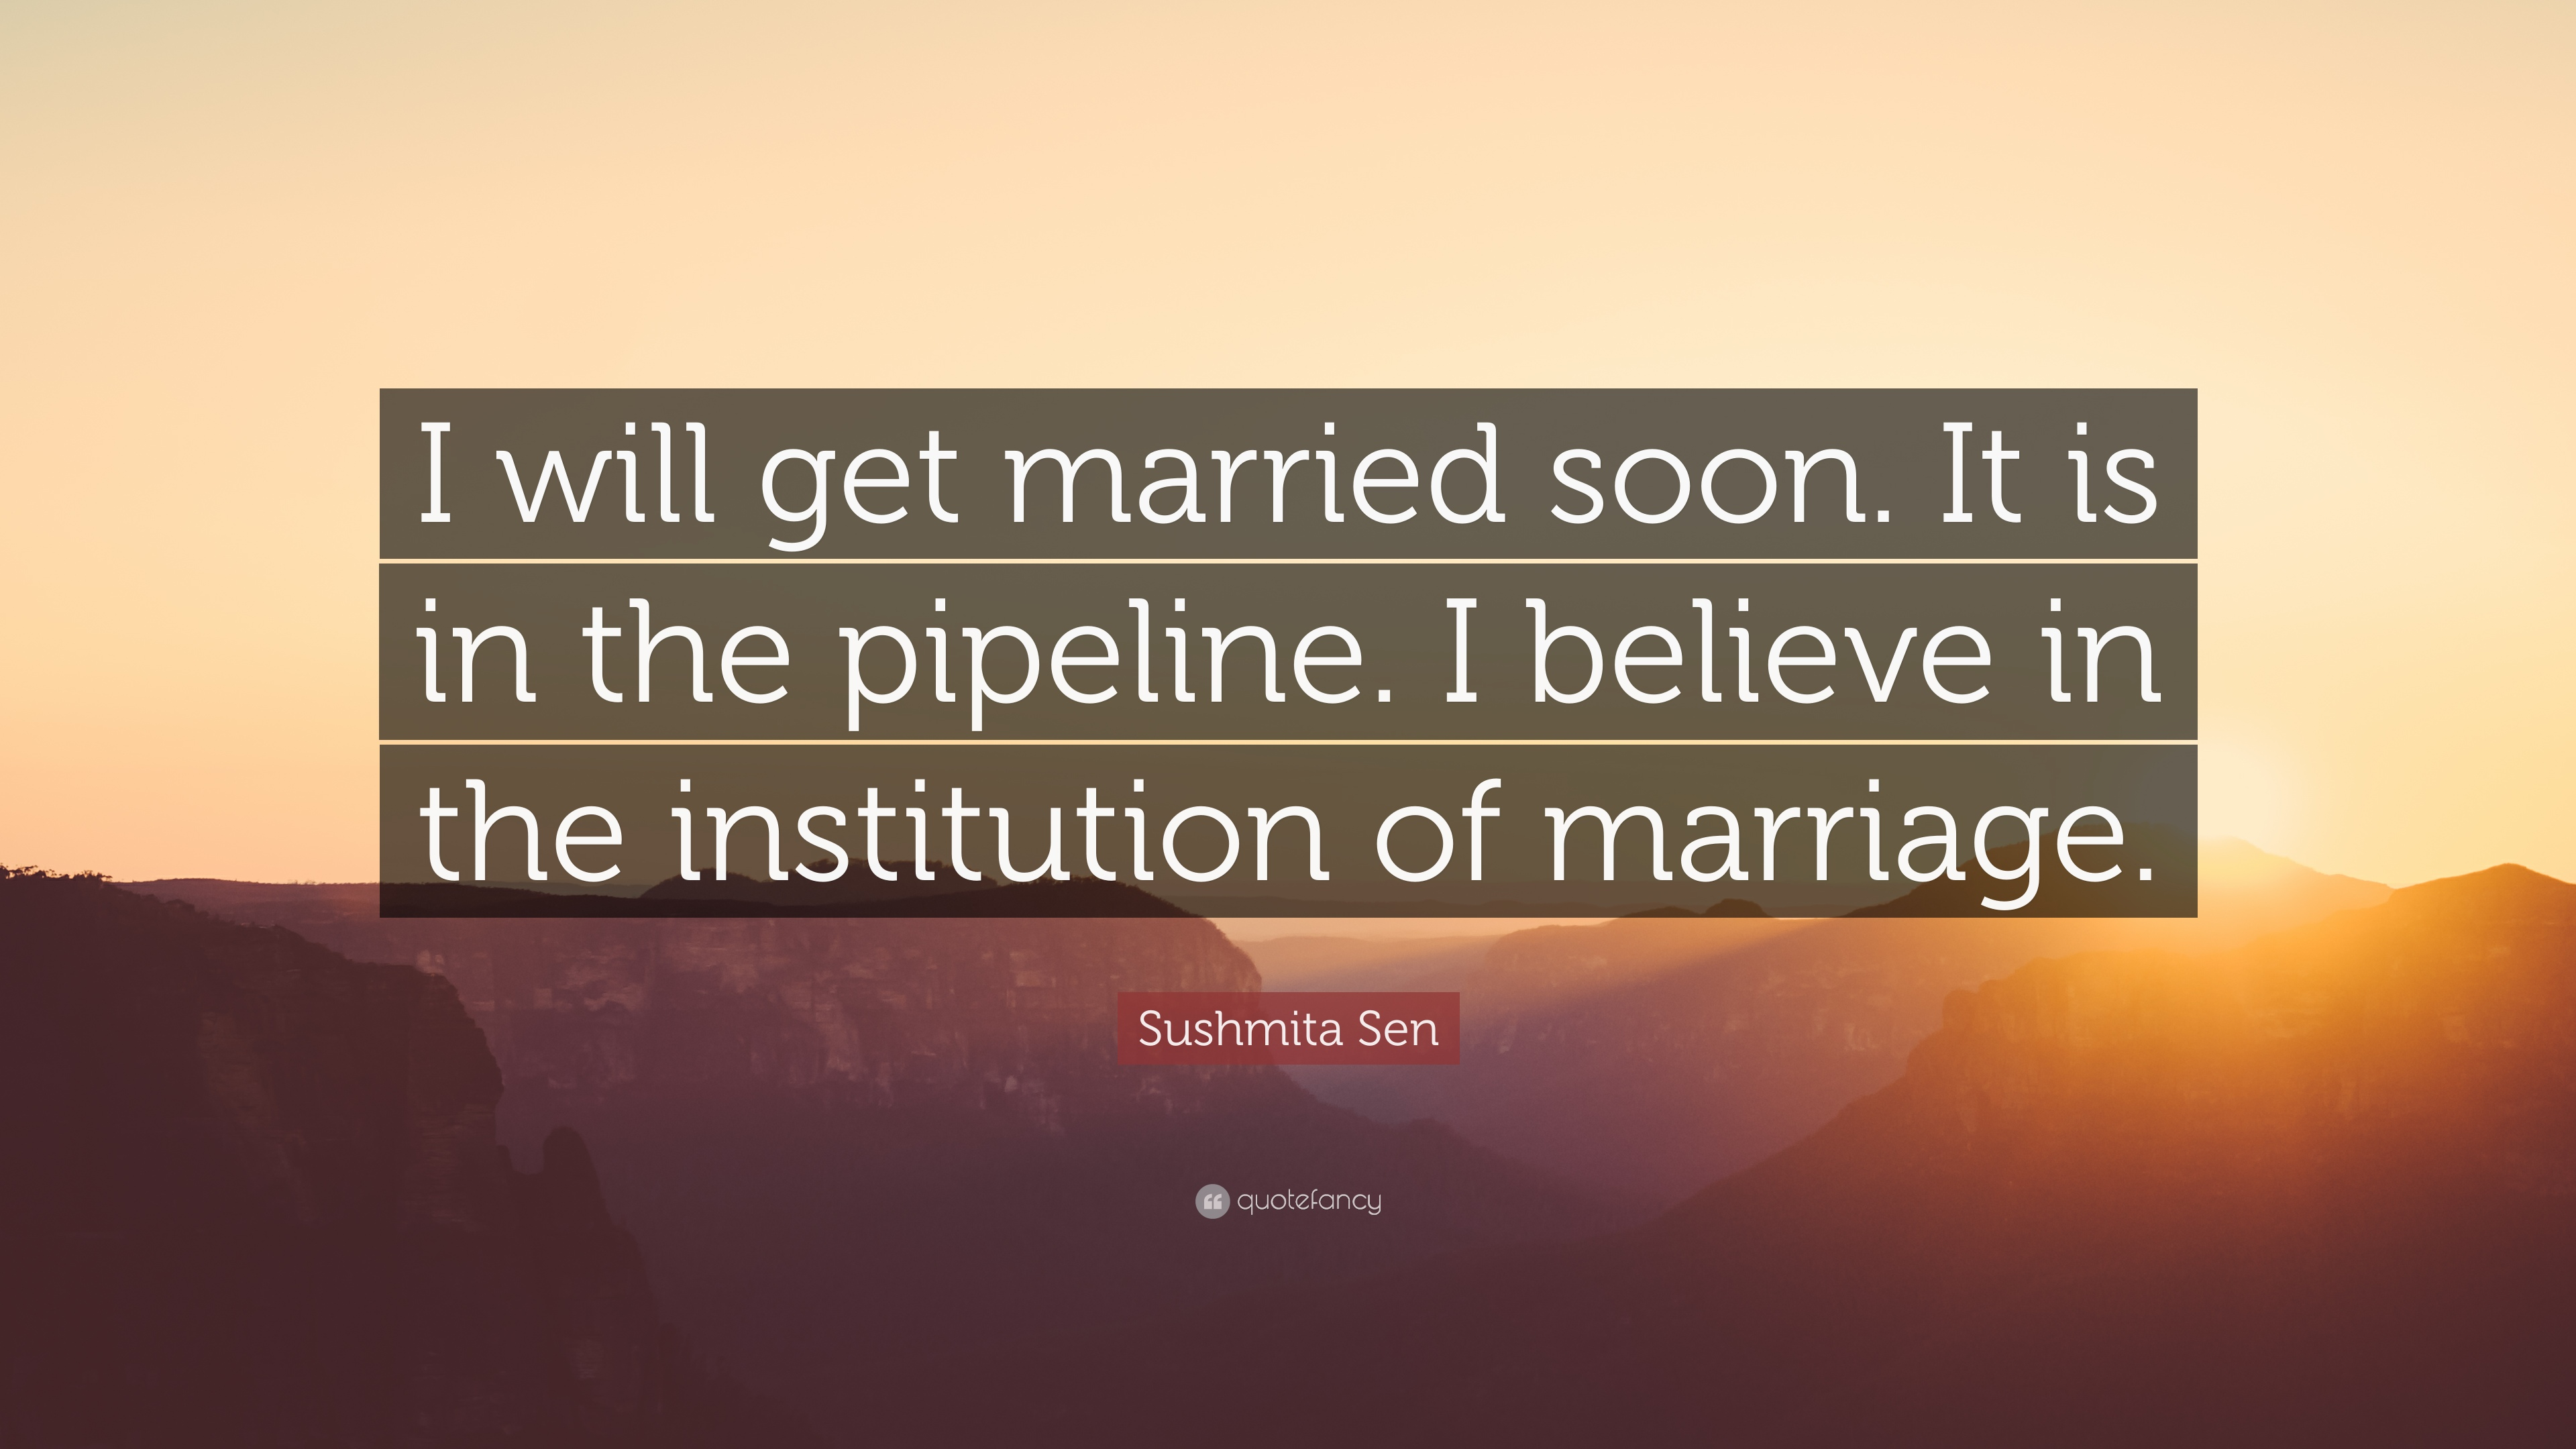 Sushmita Sen Quote I Will Get Married Soon It Is In The Pipeline I Believe In The Institution Of Marriage 9 Wallpapers Quotefancy